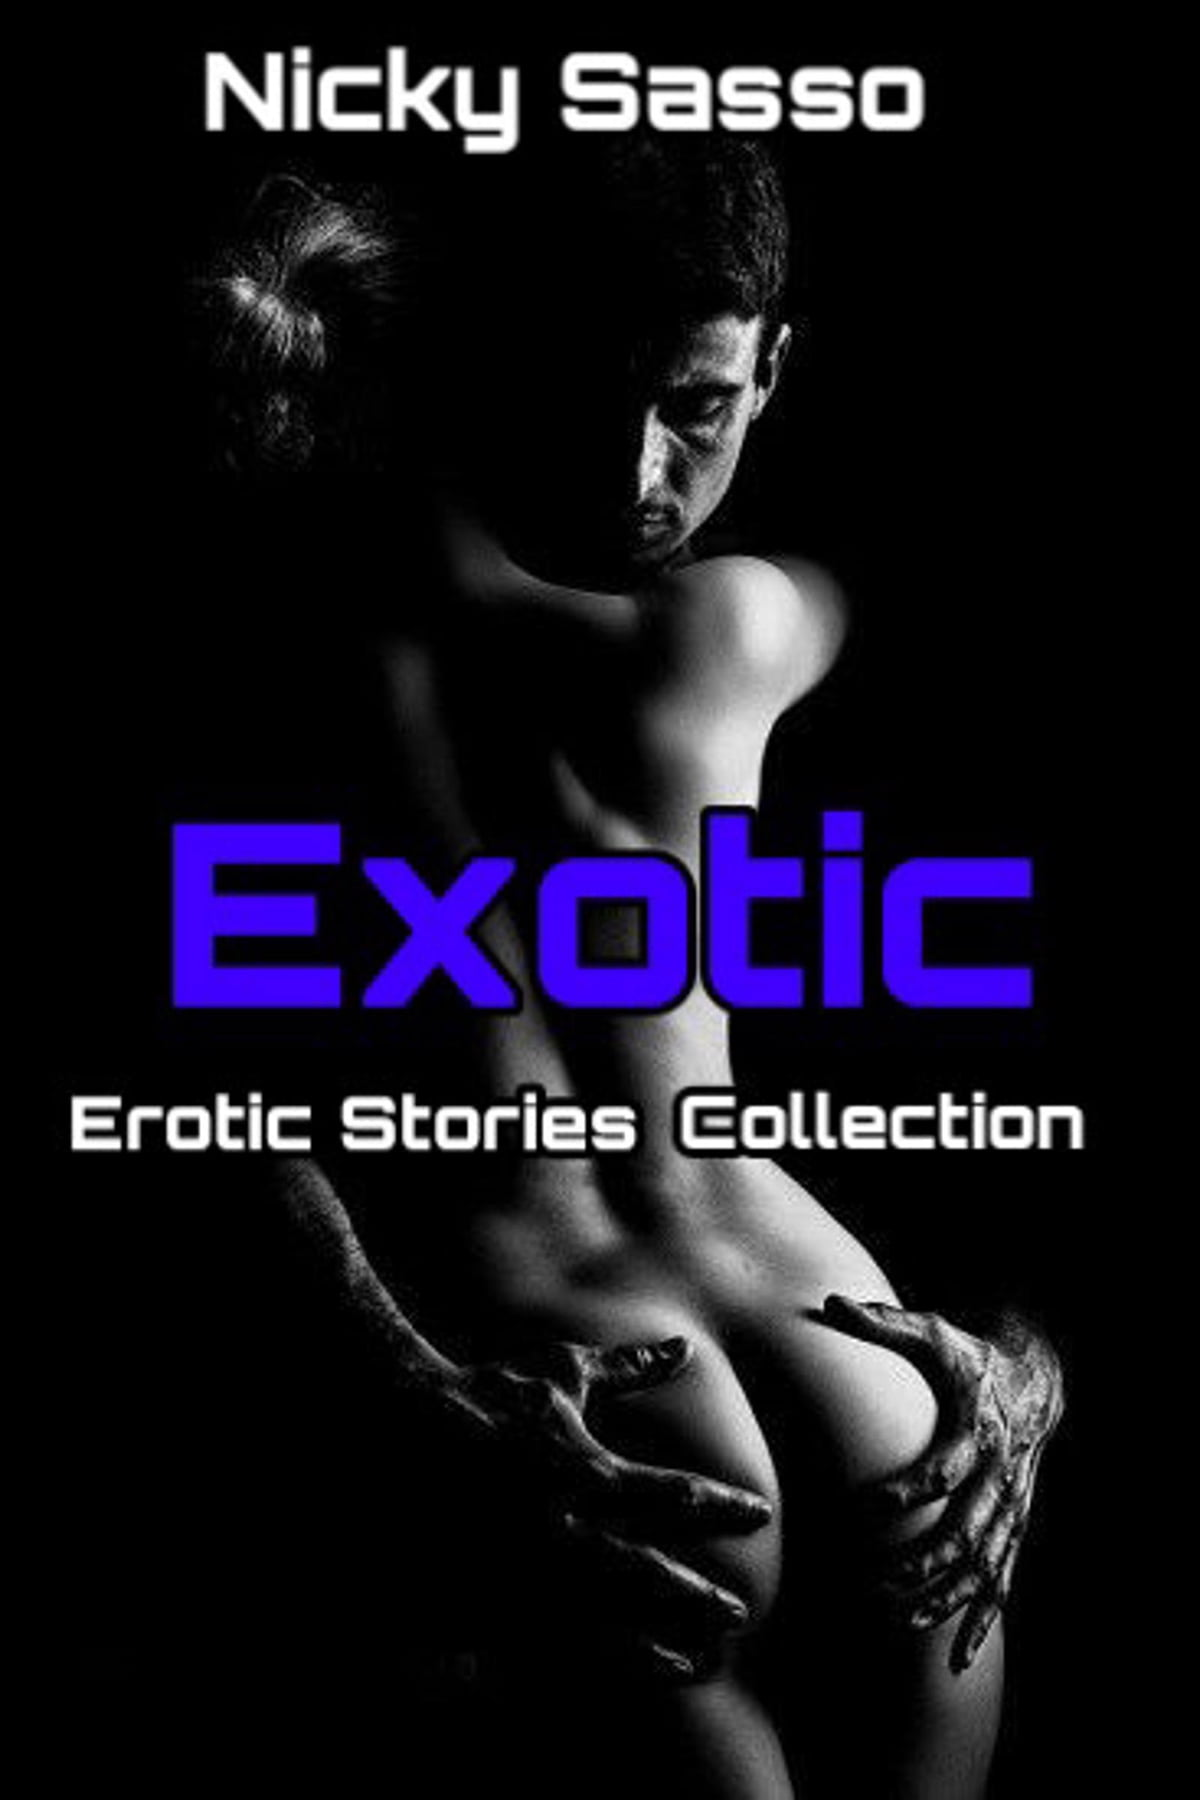 Free curious erotic stories, free amateur teen gangbang vdeos